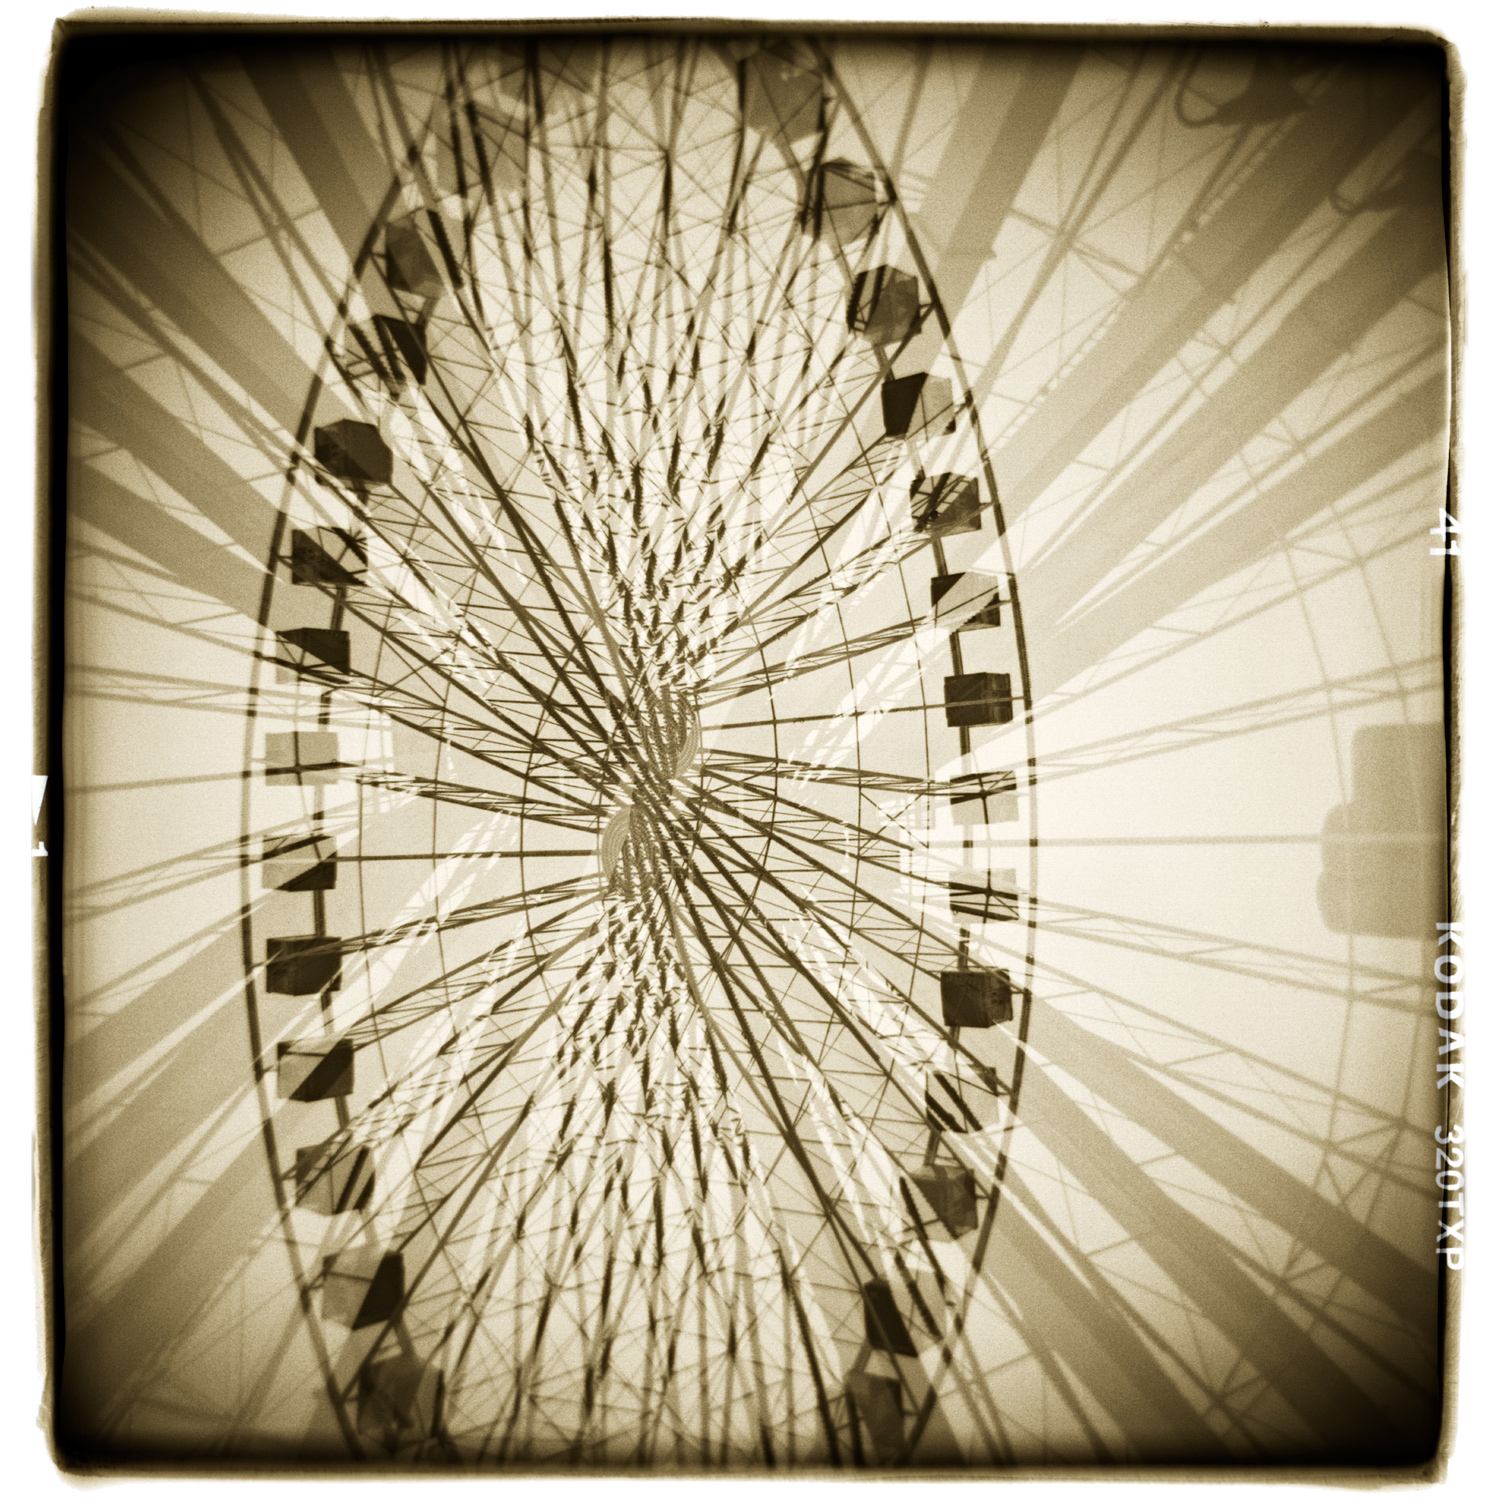 """""""Everything I think I know, I'm not sure I do"""" Navy Pier, Chicago H1472 (In-camera Double Exposure)"""